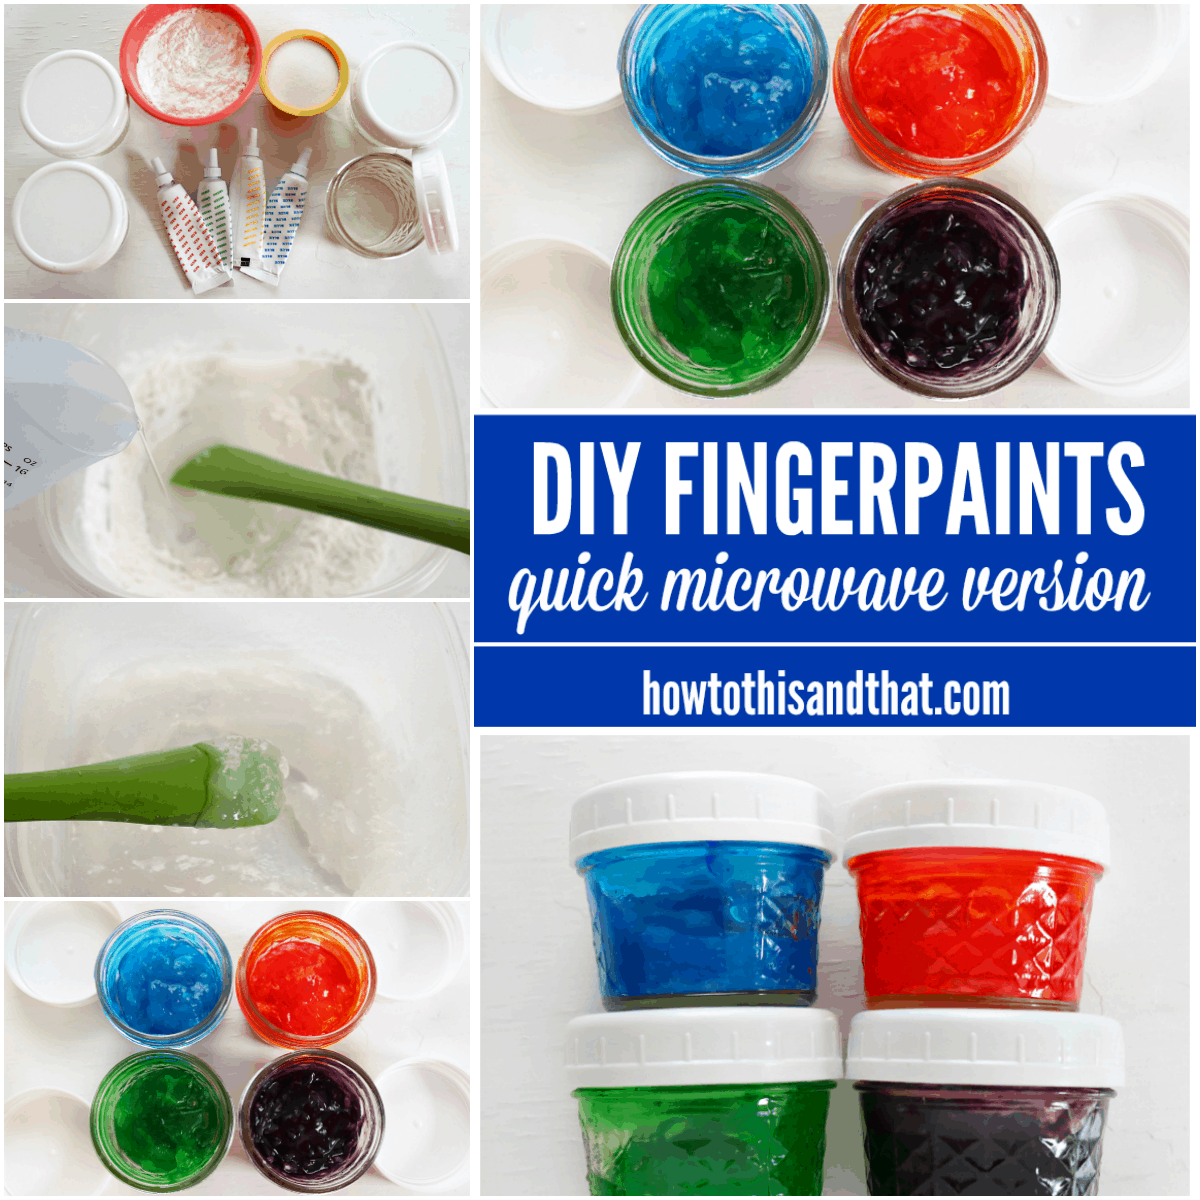 DIY fingerpaints